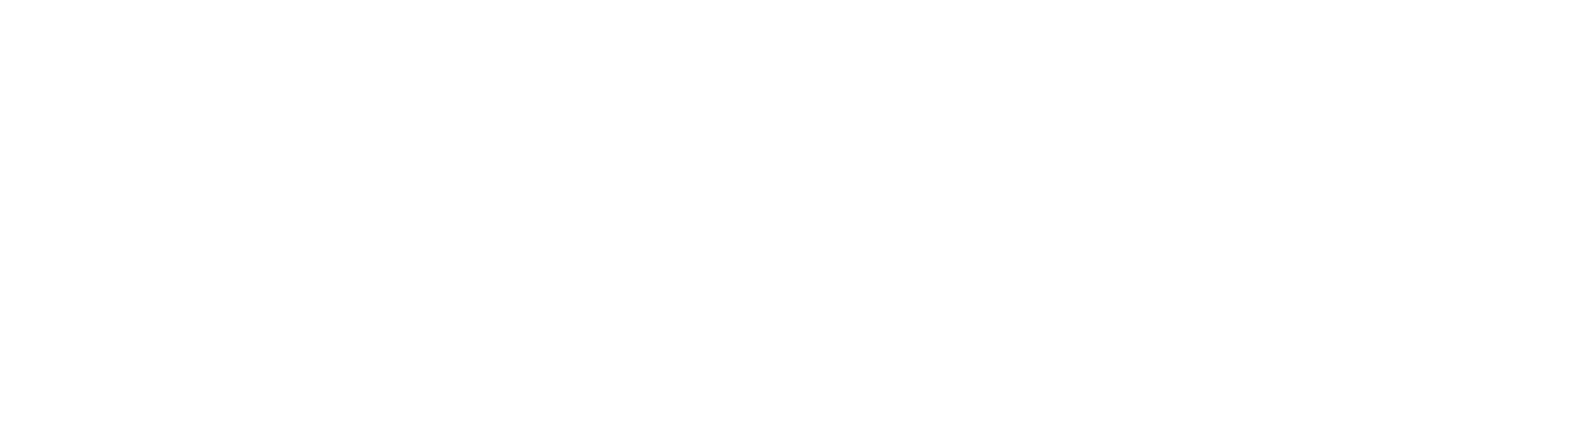 Ridgeline-Property-Group_logo_w.png